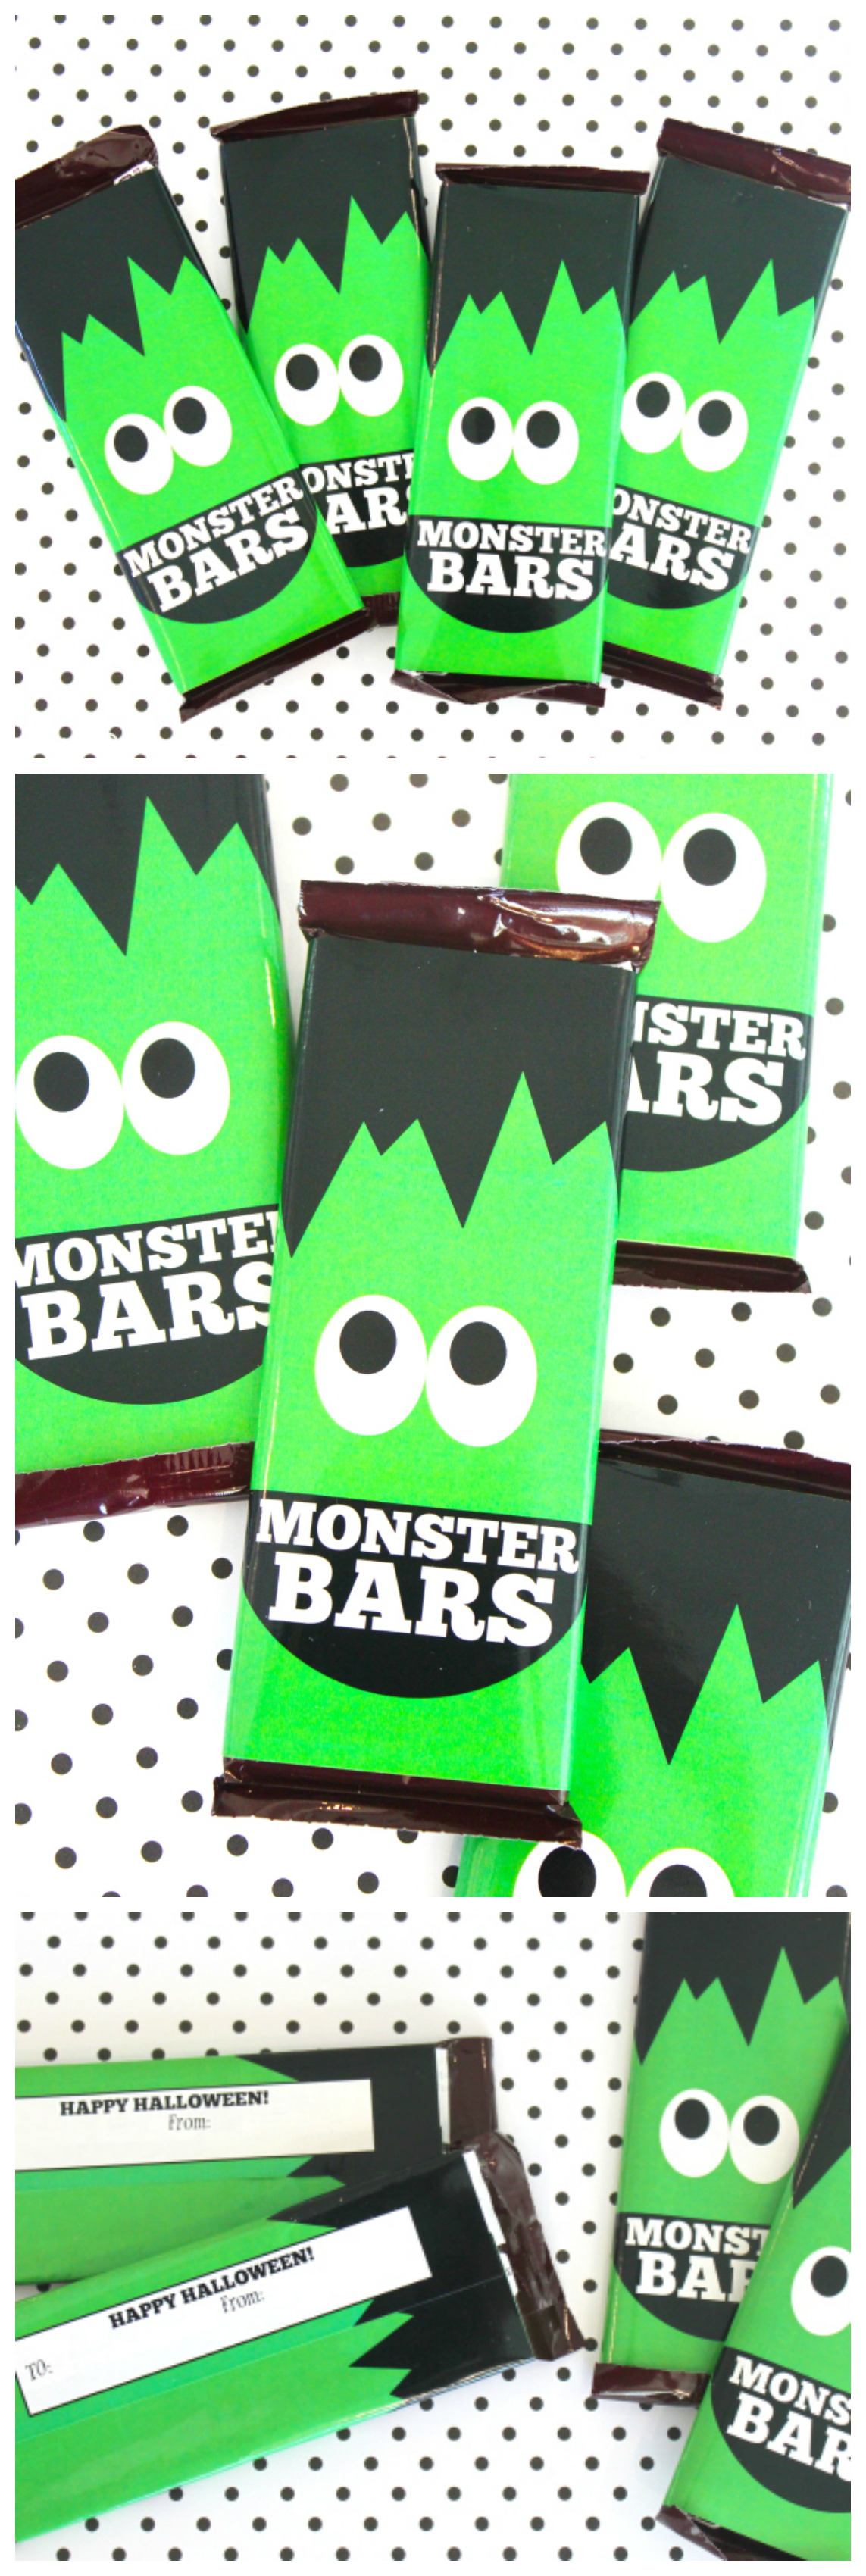 Printable Monster Bars Candy Bar Wrappers | So Fun For Halloween!